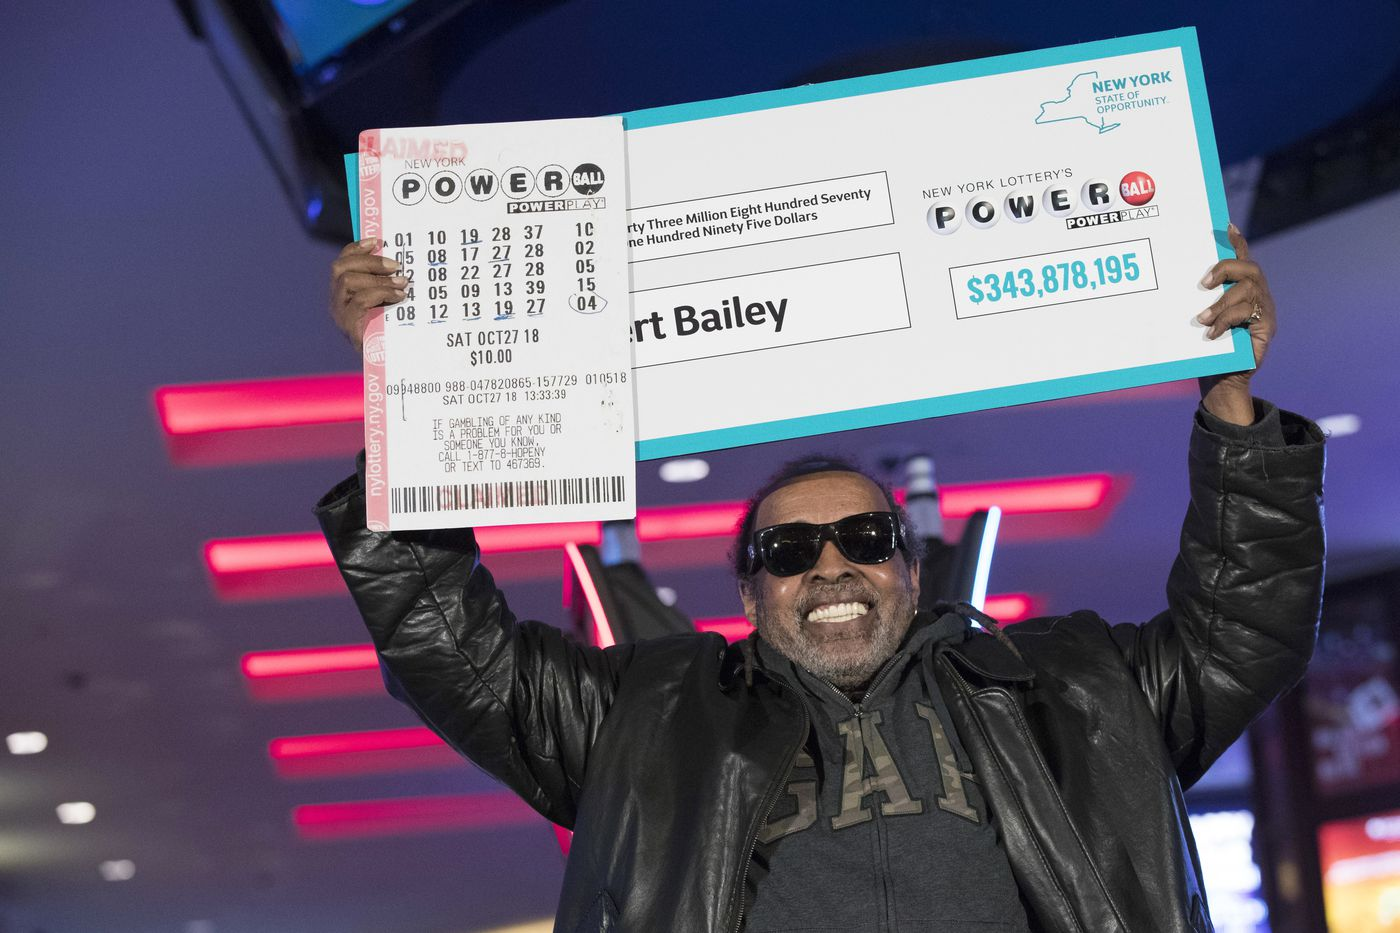 Victor of $343M in Powerball 'can't let money change me'